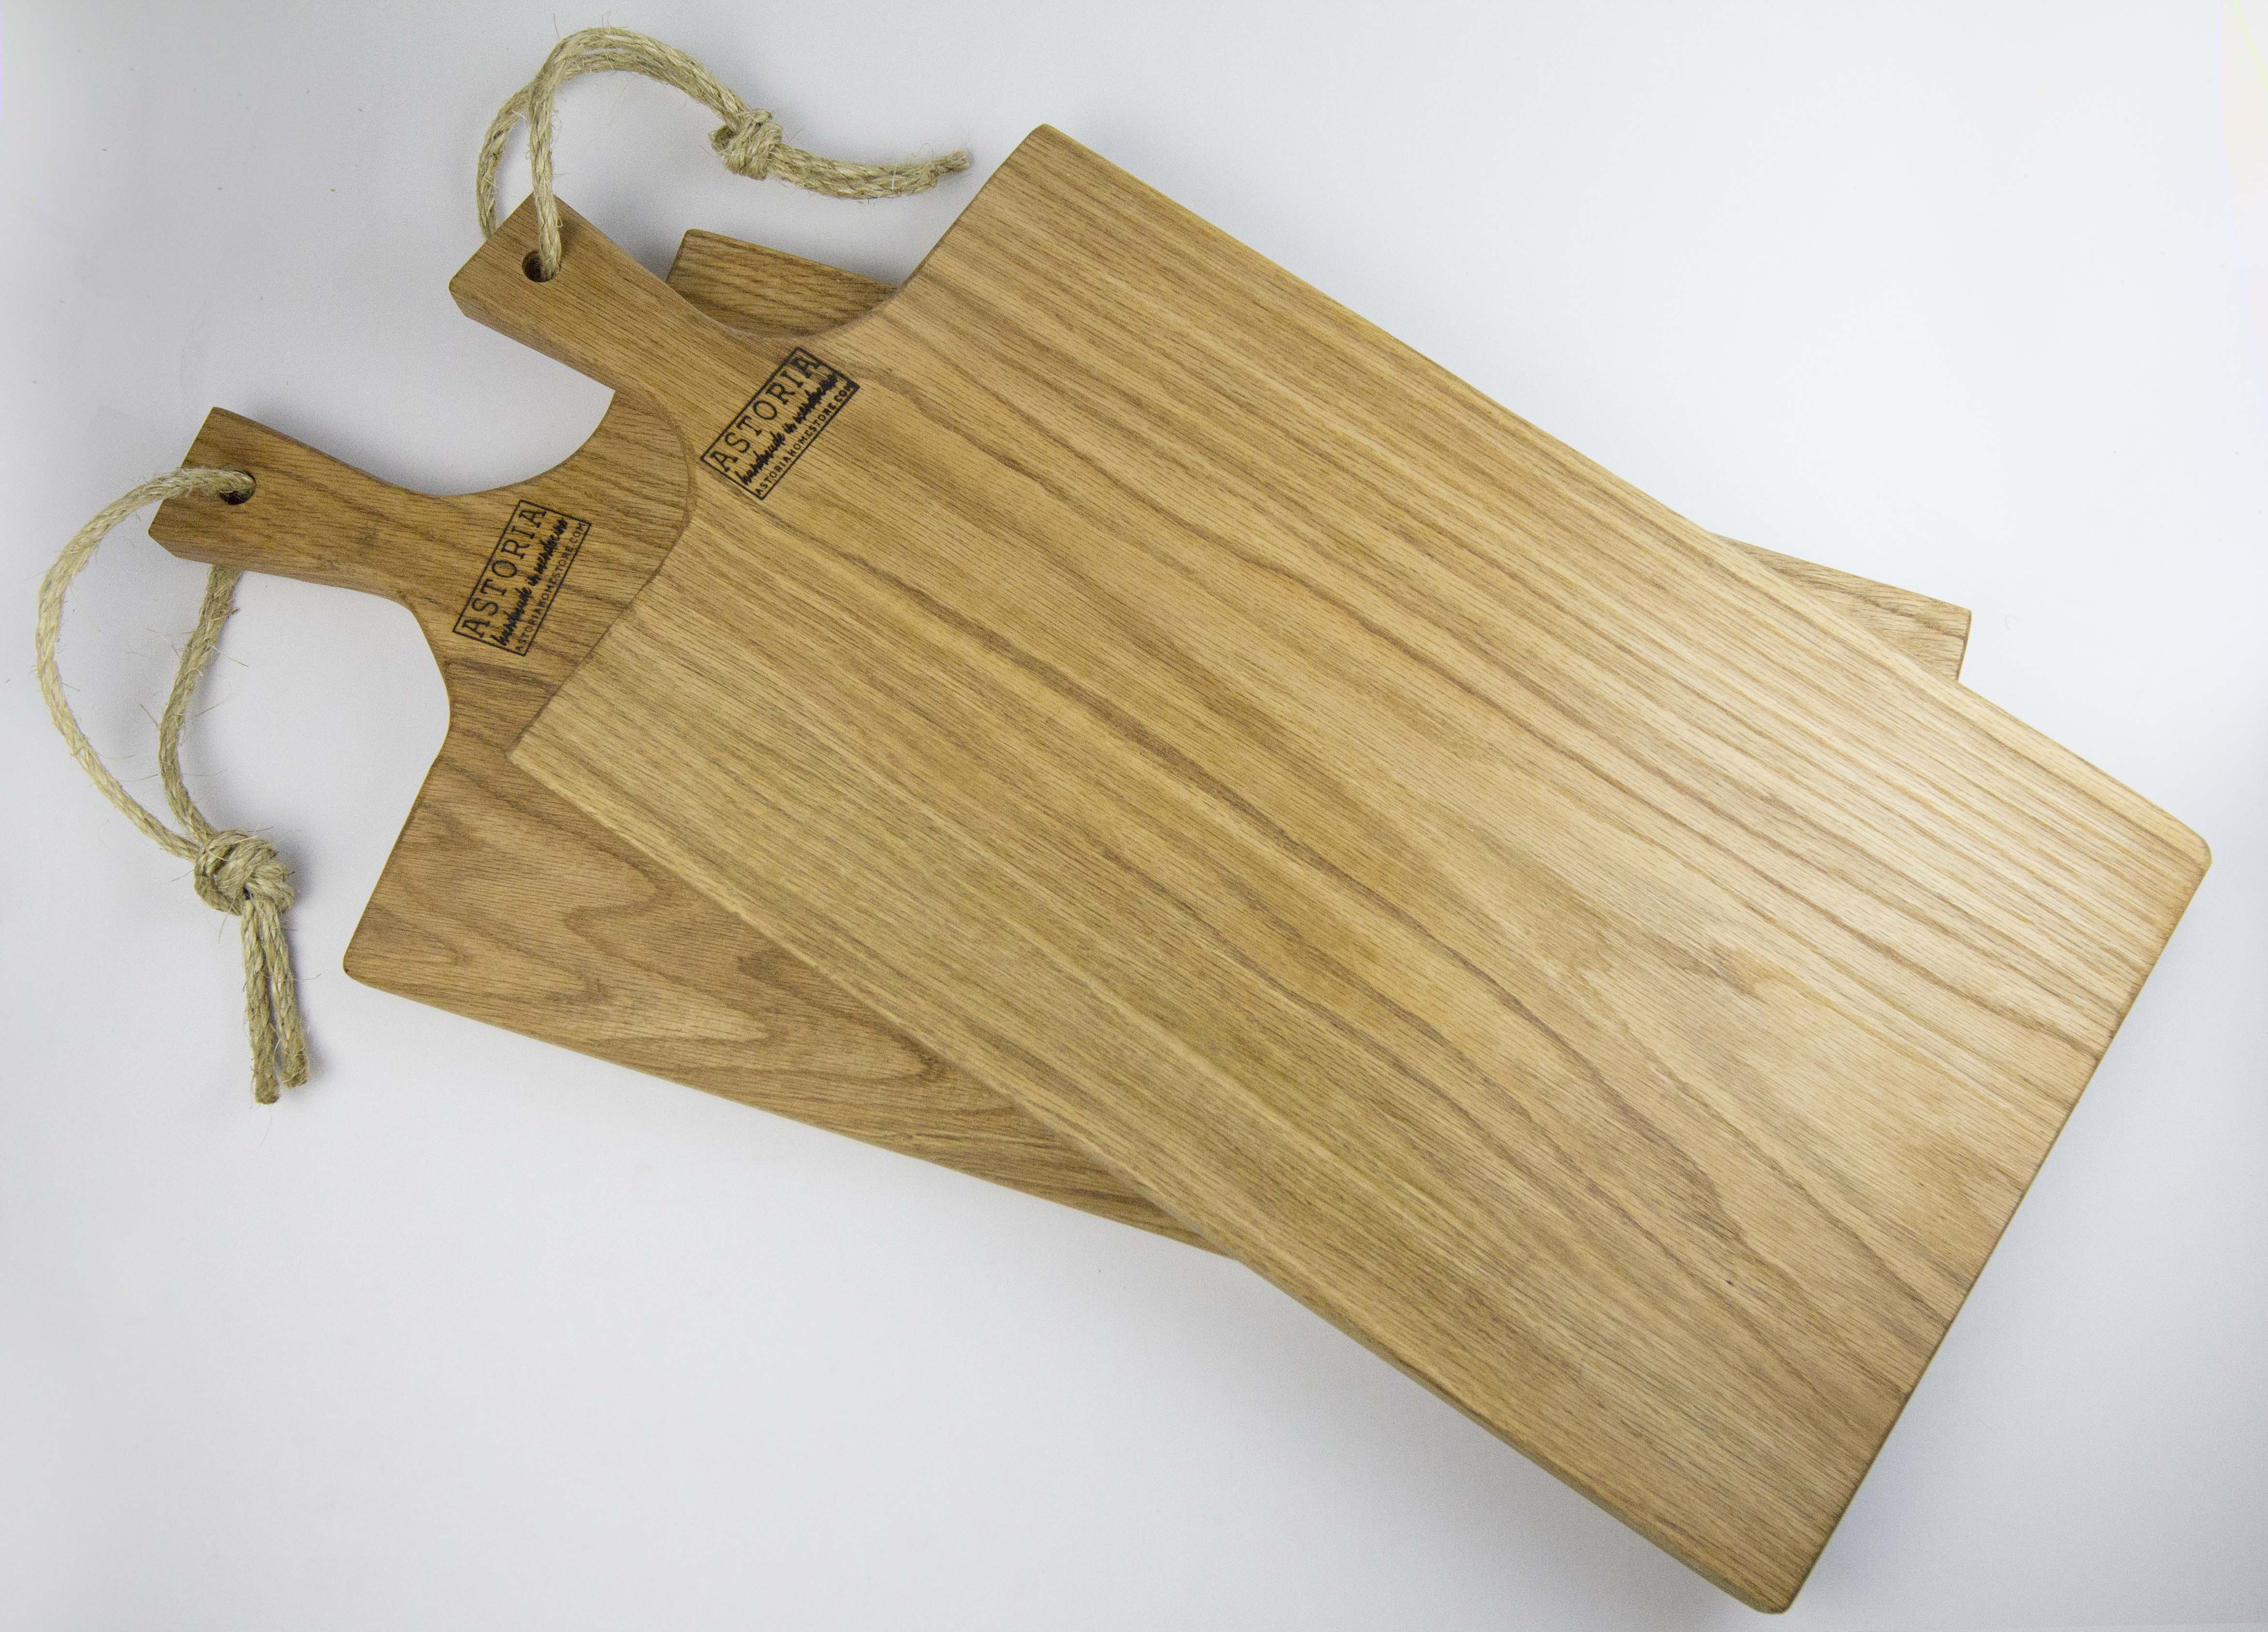 Two Large Solid Red Oak Charcuterie Serving Set Handmade In Mendocino California Combo Deal Save 20 Astoria Home Decor And Gift Shop In Downtown Mendocino